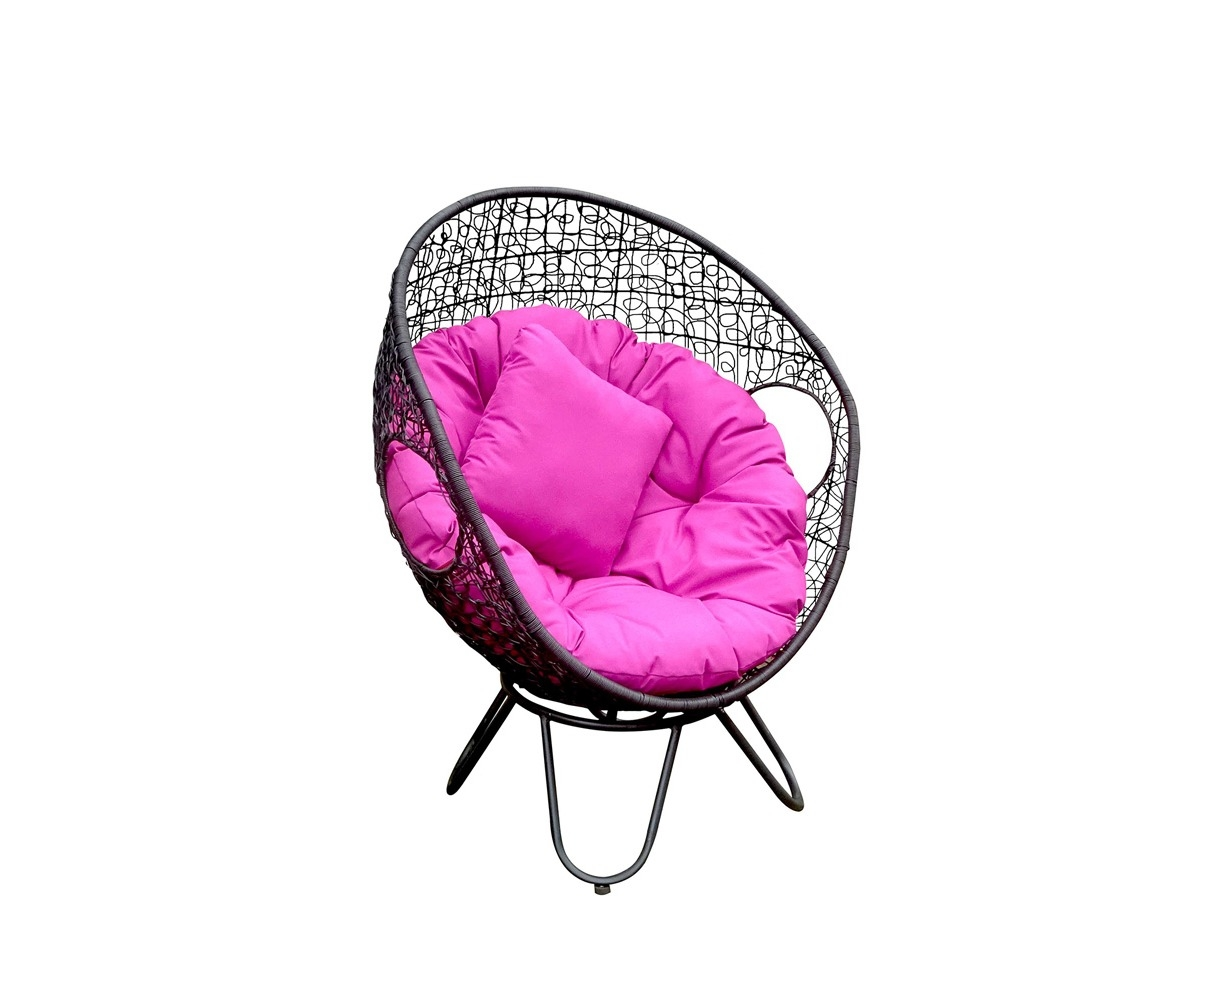 serrana round wicker swivel egg chair groceries online online grocery store. Black Bedroom Furniture Sets. Home Design Ideas